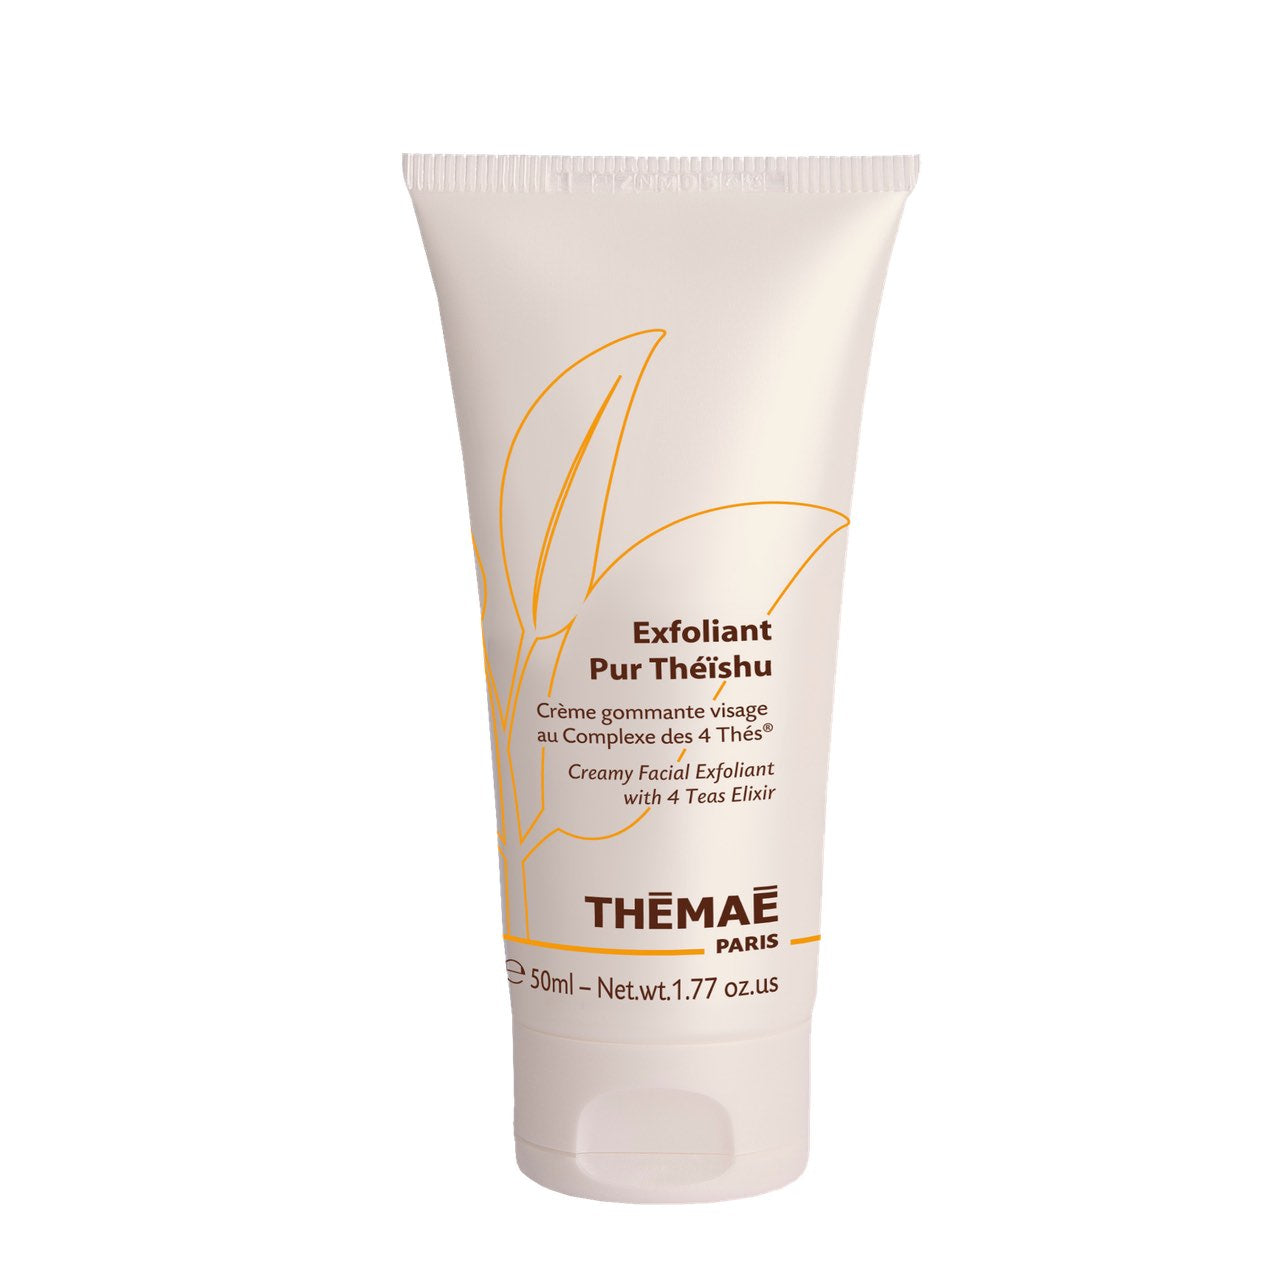 THEMAE Gentle facial exfoliant